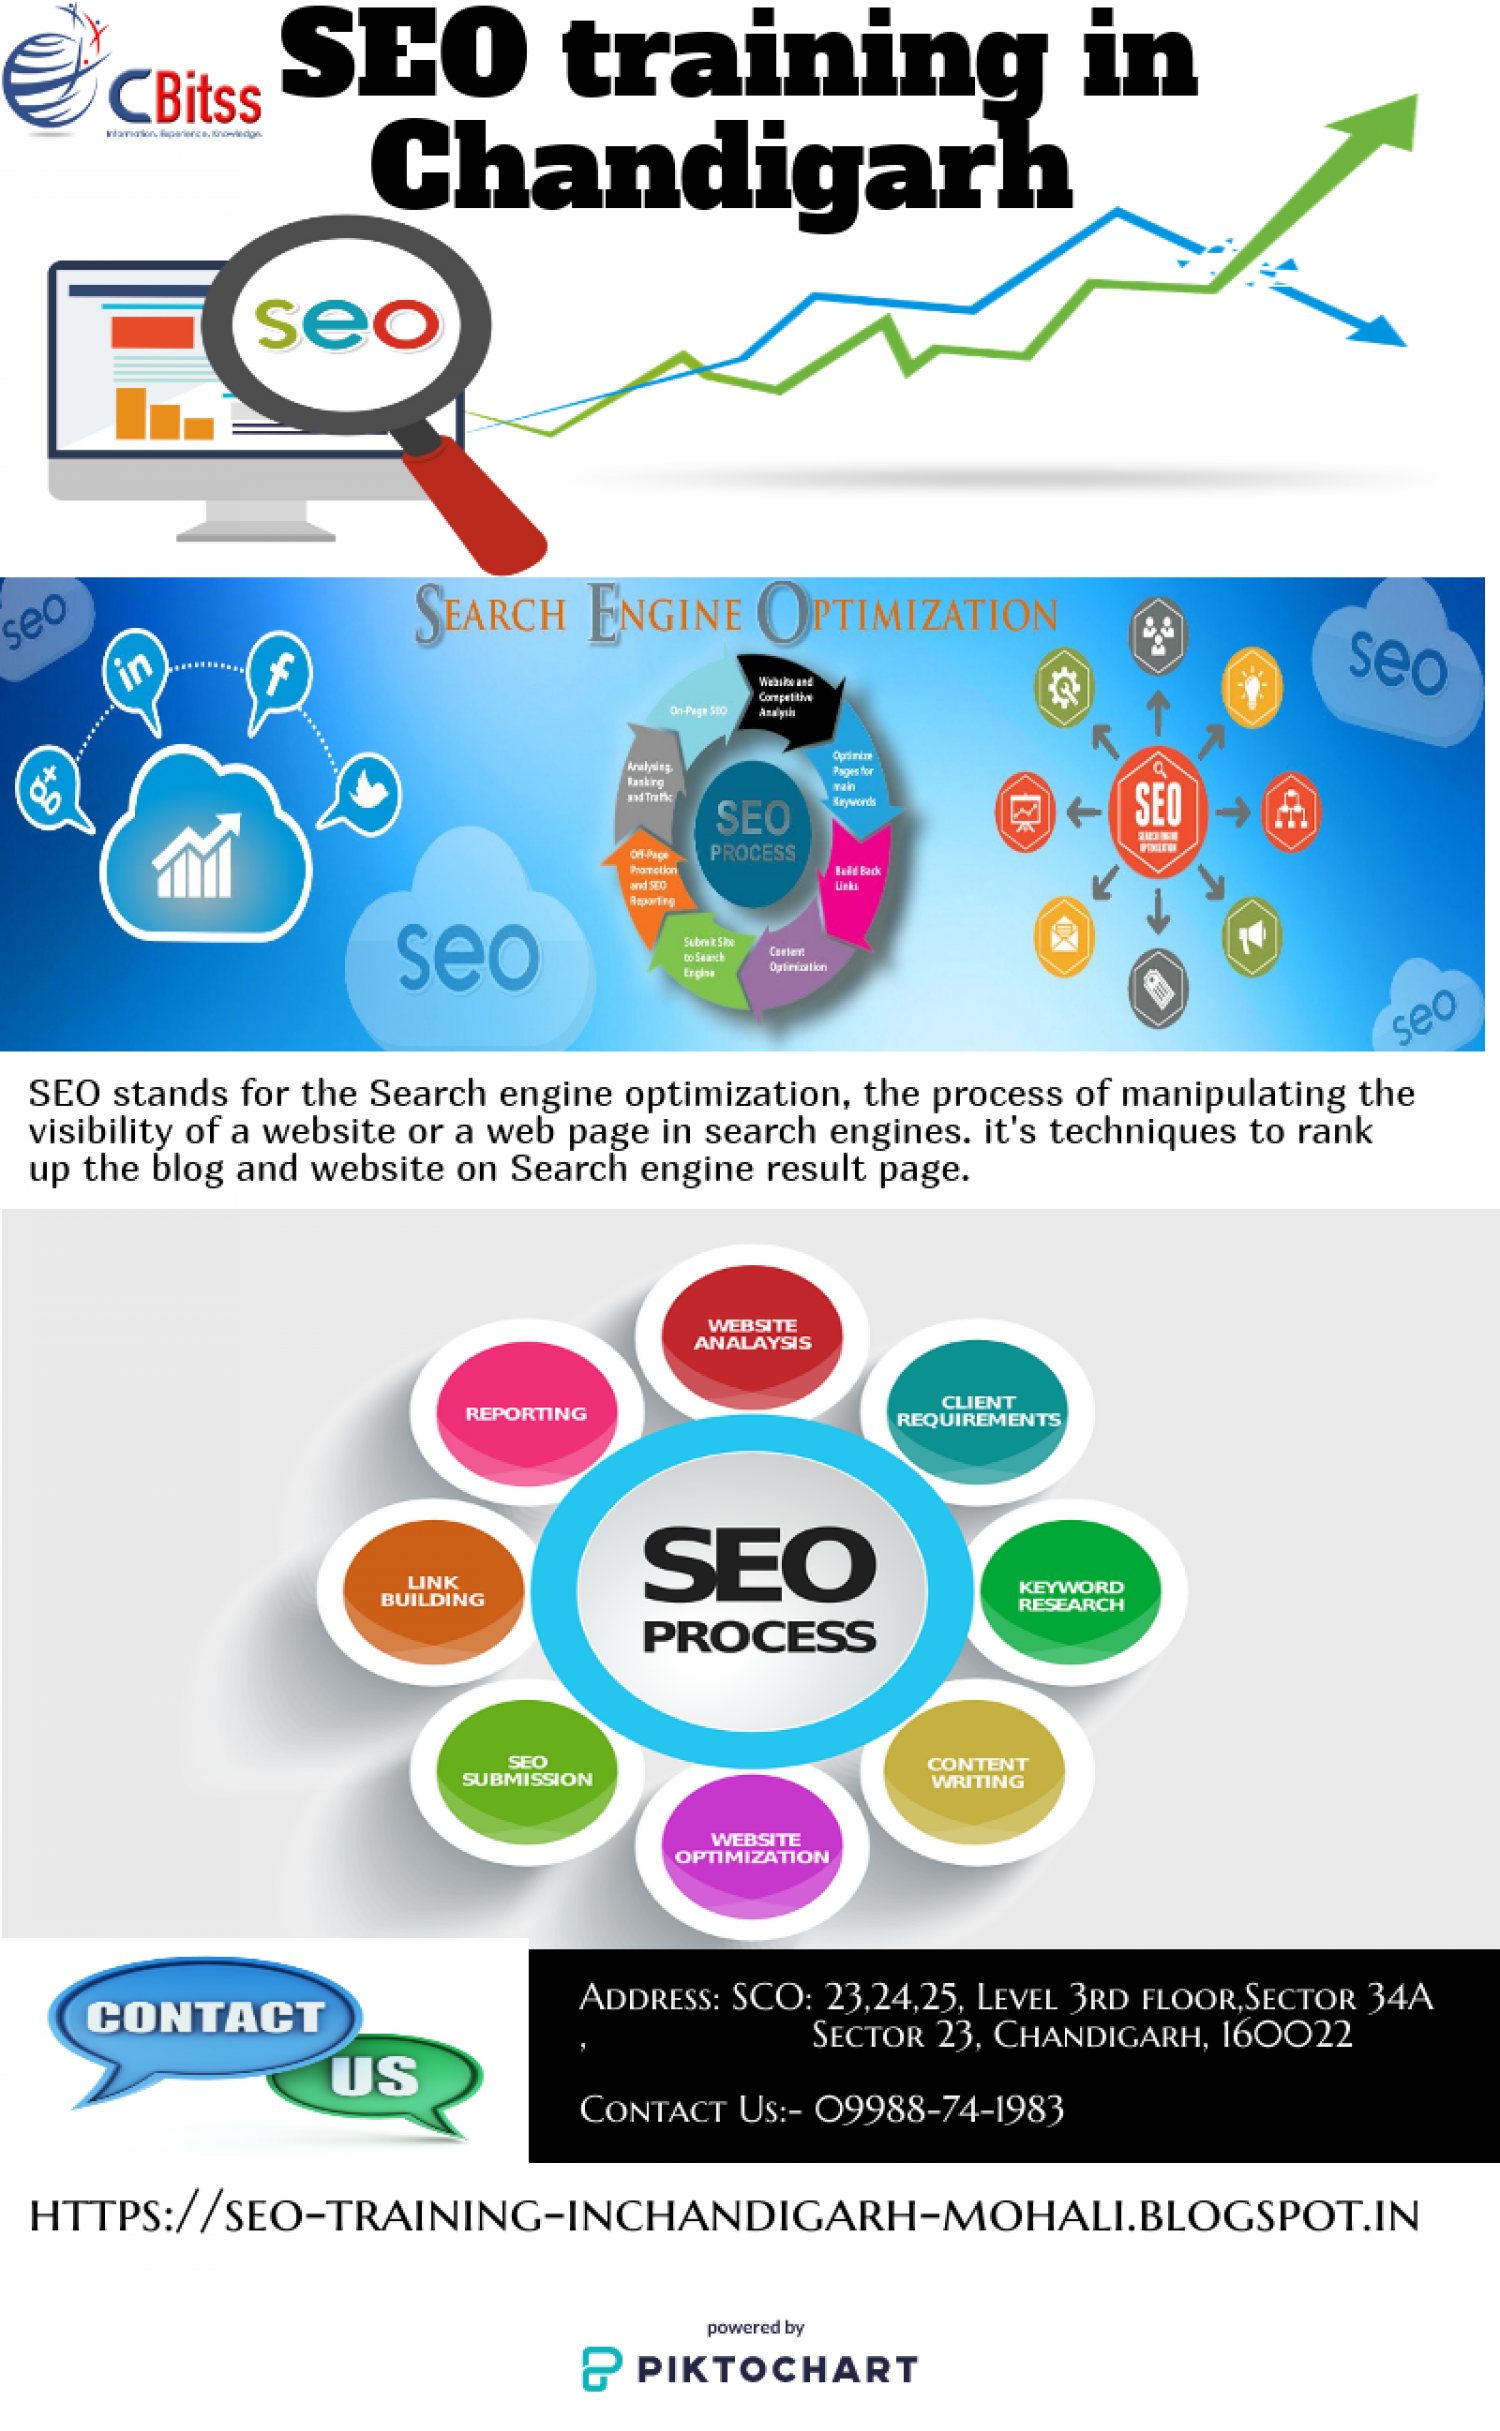 SEO training in Chandigarh Infographic